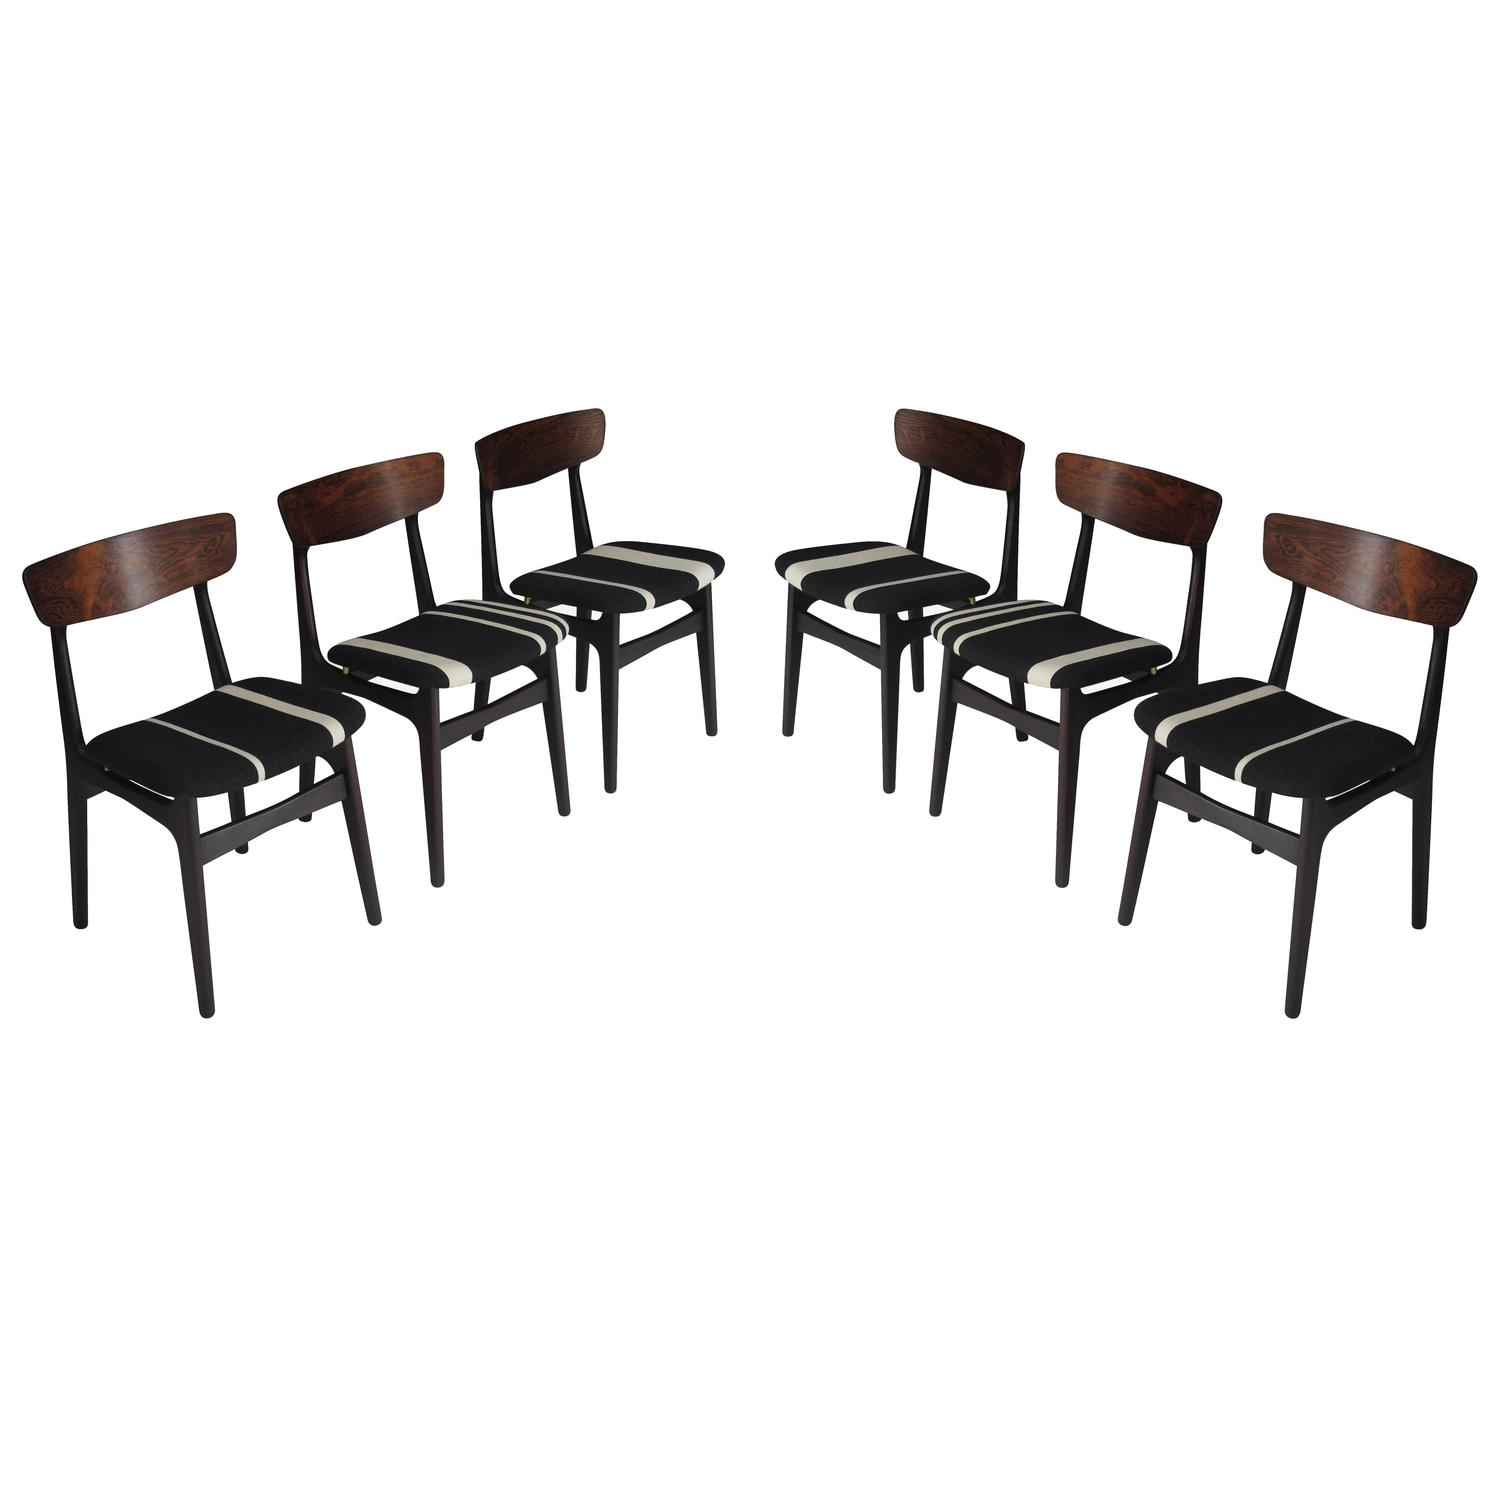 Danish Rosewood Dining Chairs with Black White Striped